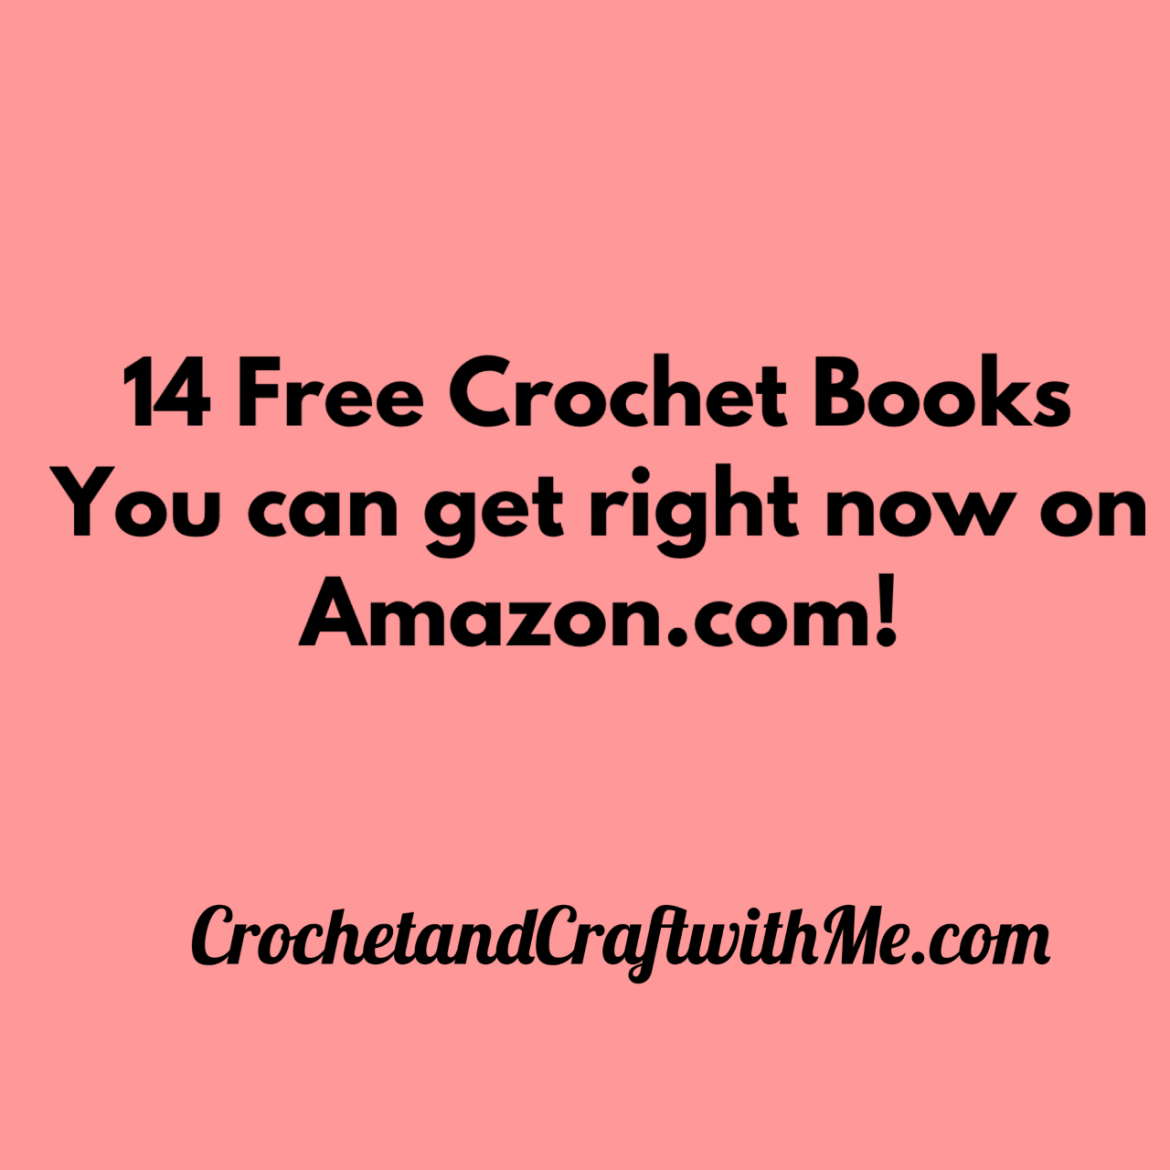 14 Crochet Books You can Get For Free On Amazon Today!  8/26/19